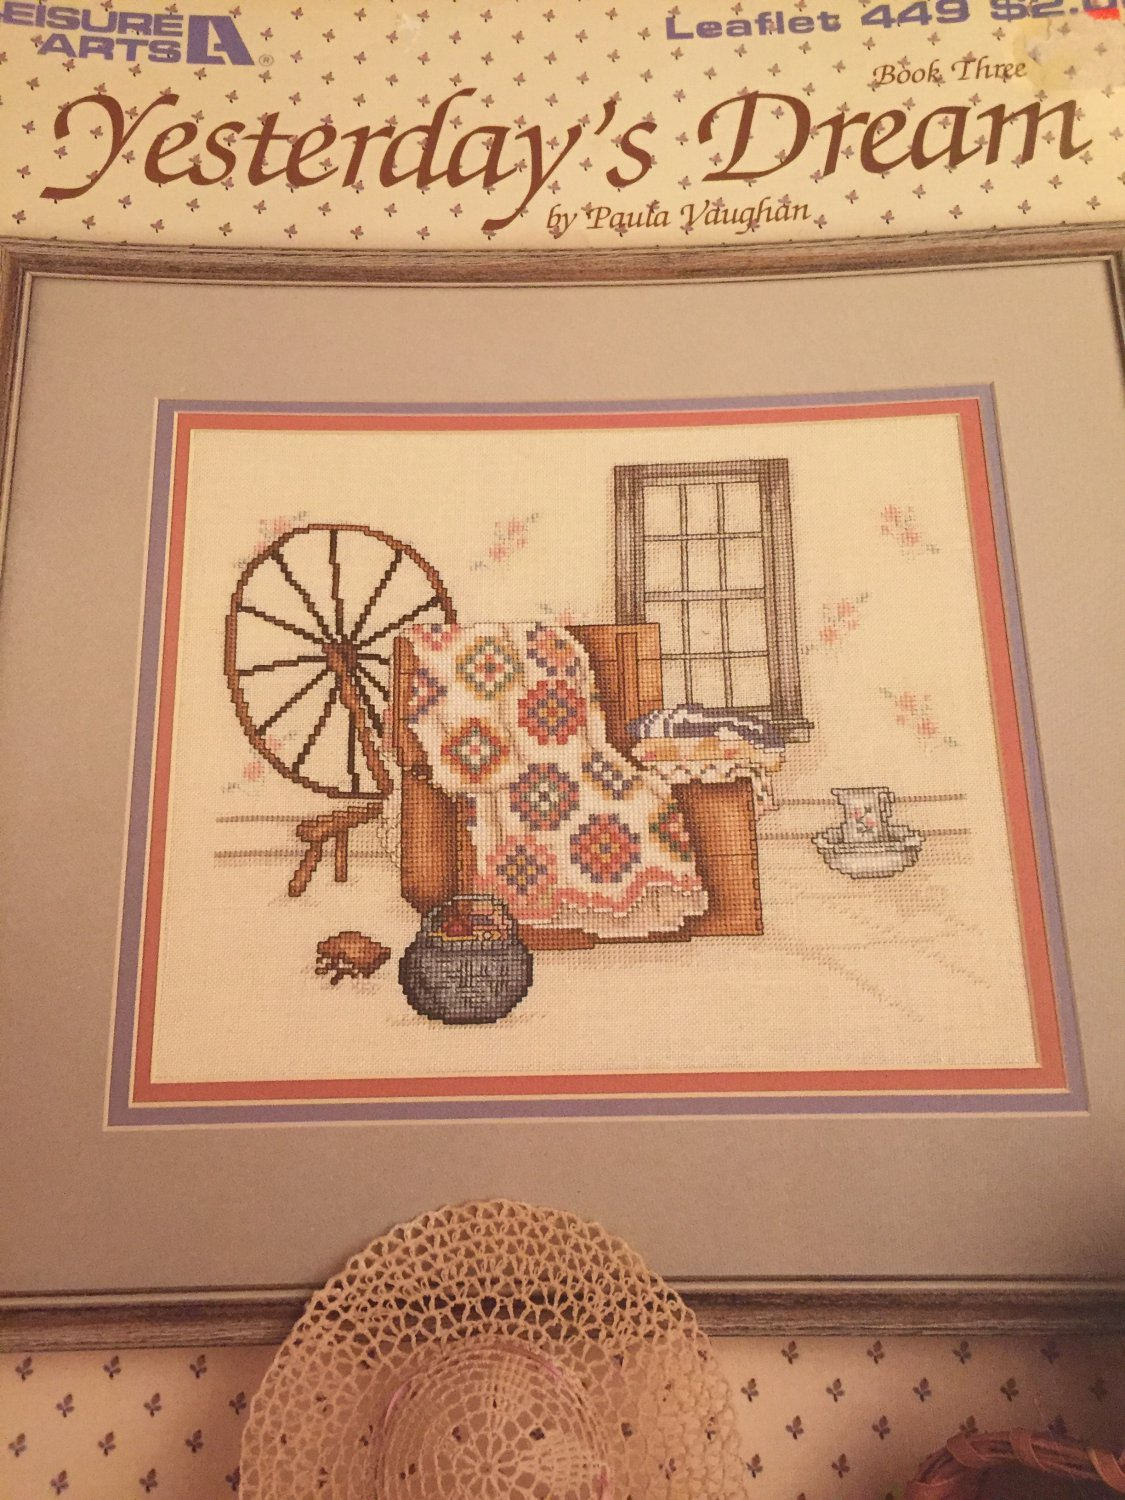 Leisure Arts Yesterday's Dream Counted Cross Stitch Leaflet 449 Book 3 by Paula Vaughn